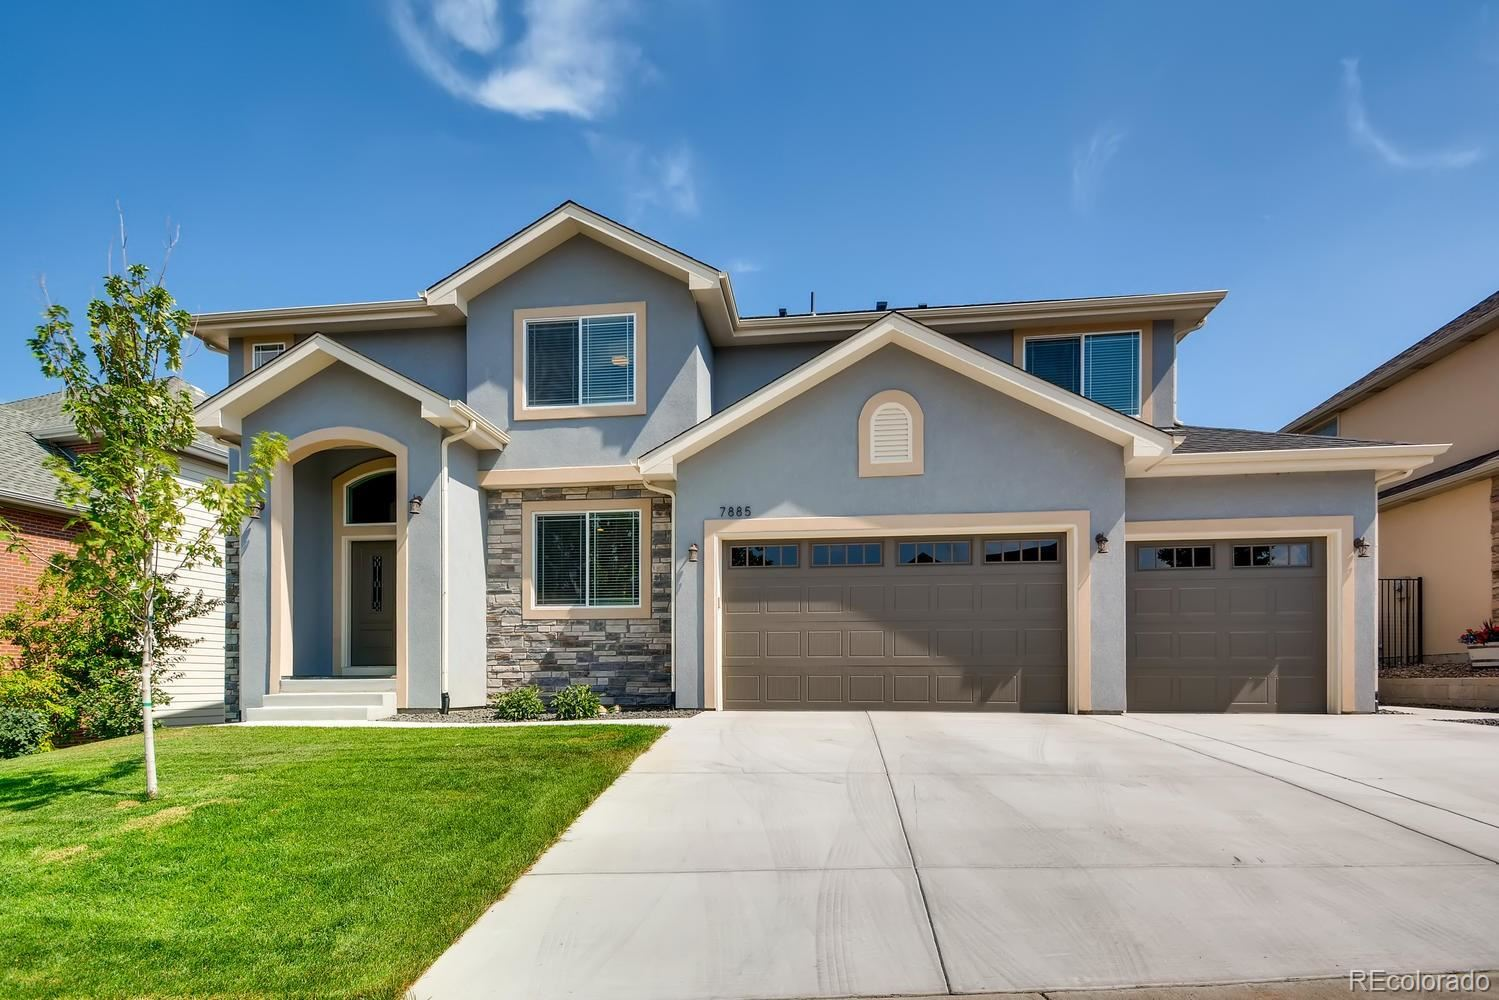 7885 W Newberry Circle, Lakewood, CO 80235 - #: 2670700